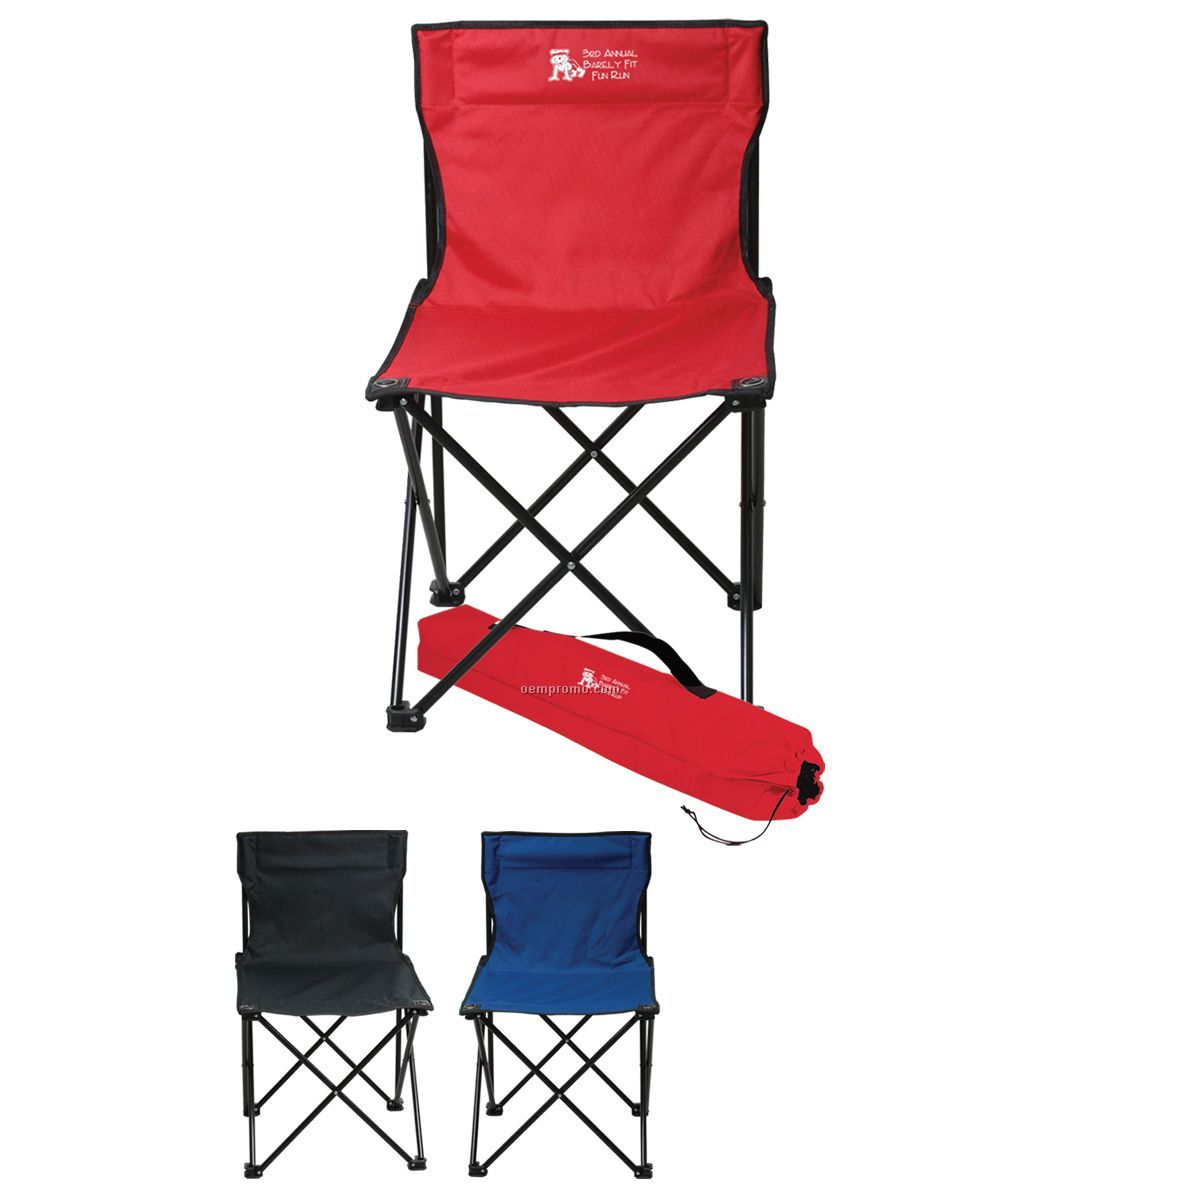 Folding Chair W/ Carrying Bag (Blank)